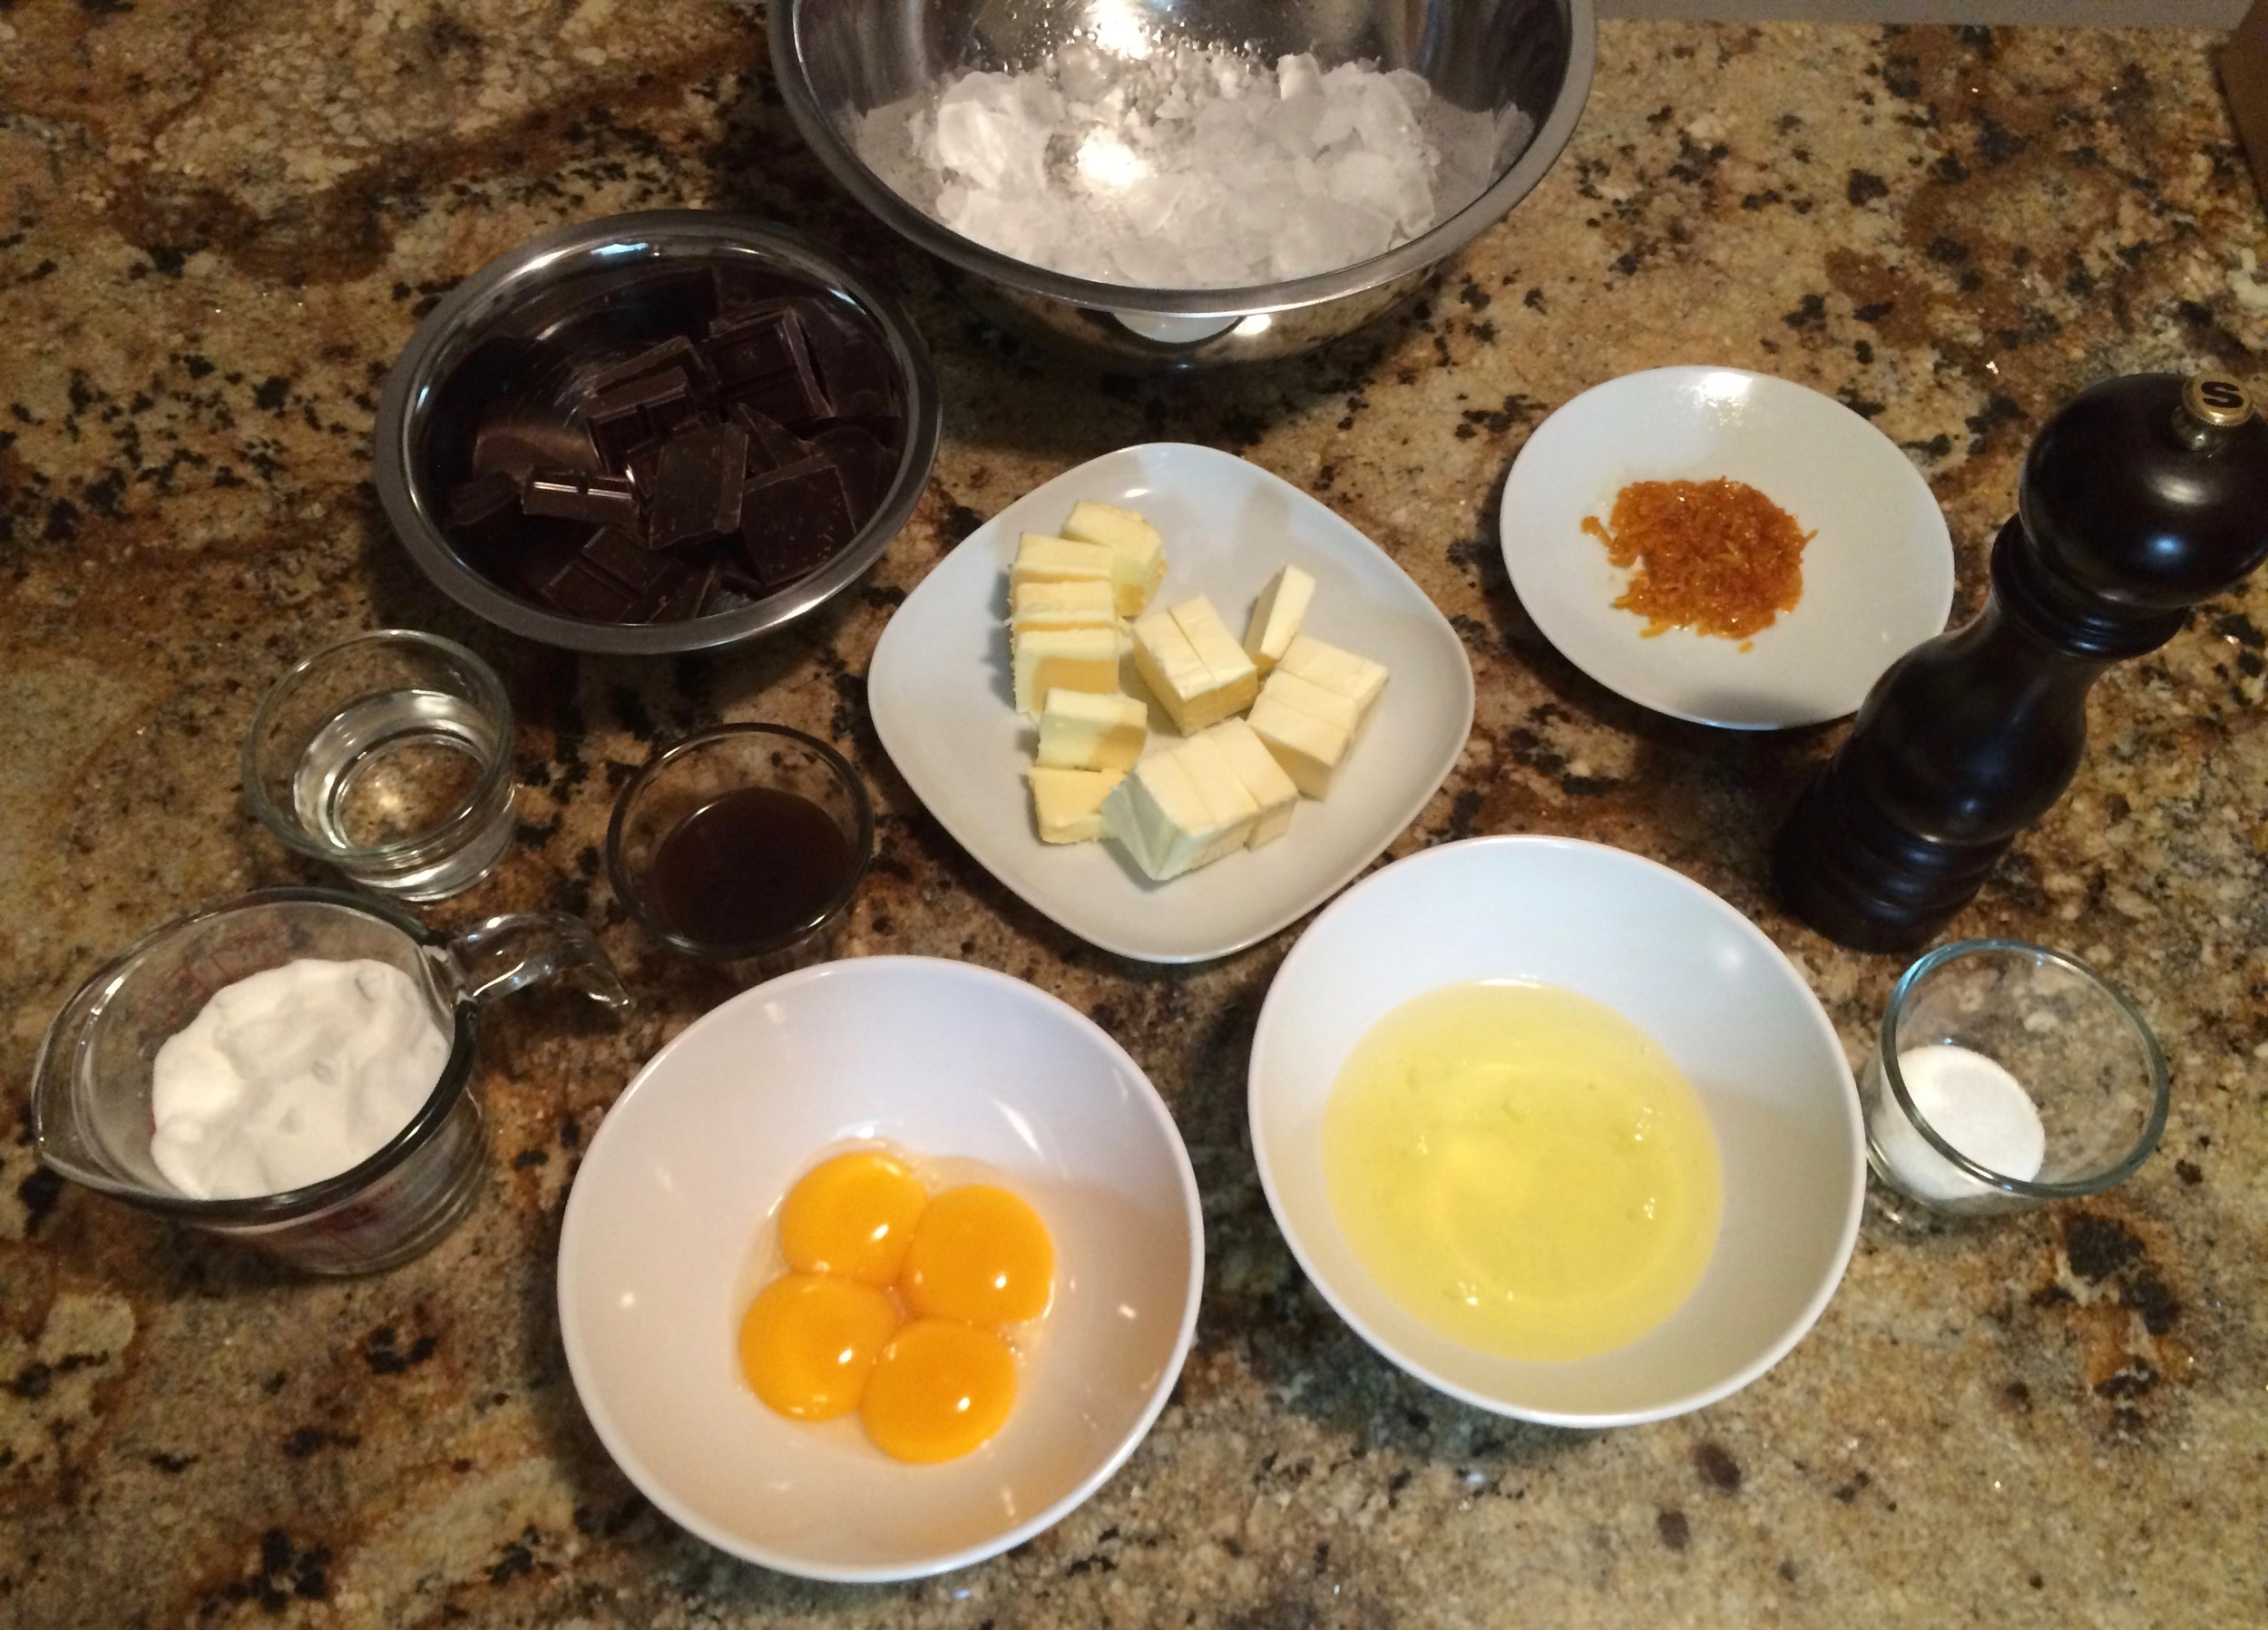 Don't drink the orange liqueur just yet, but save some for then the dessert is ready.